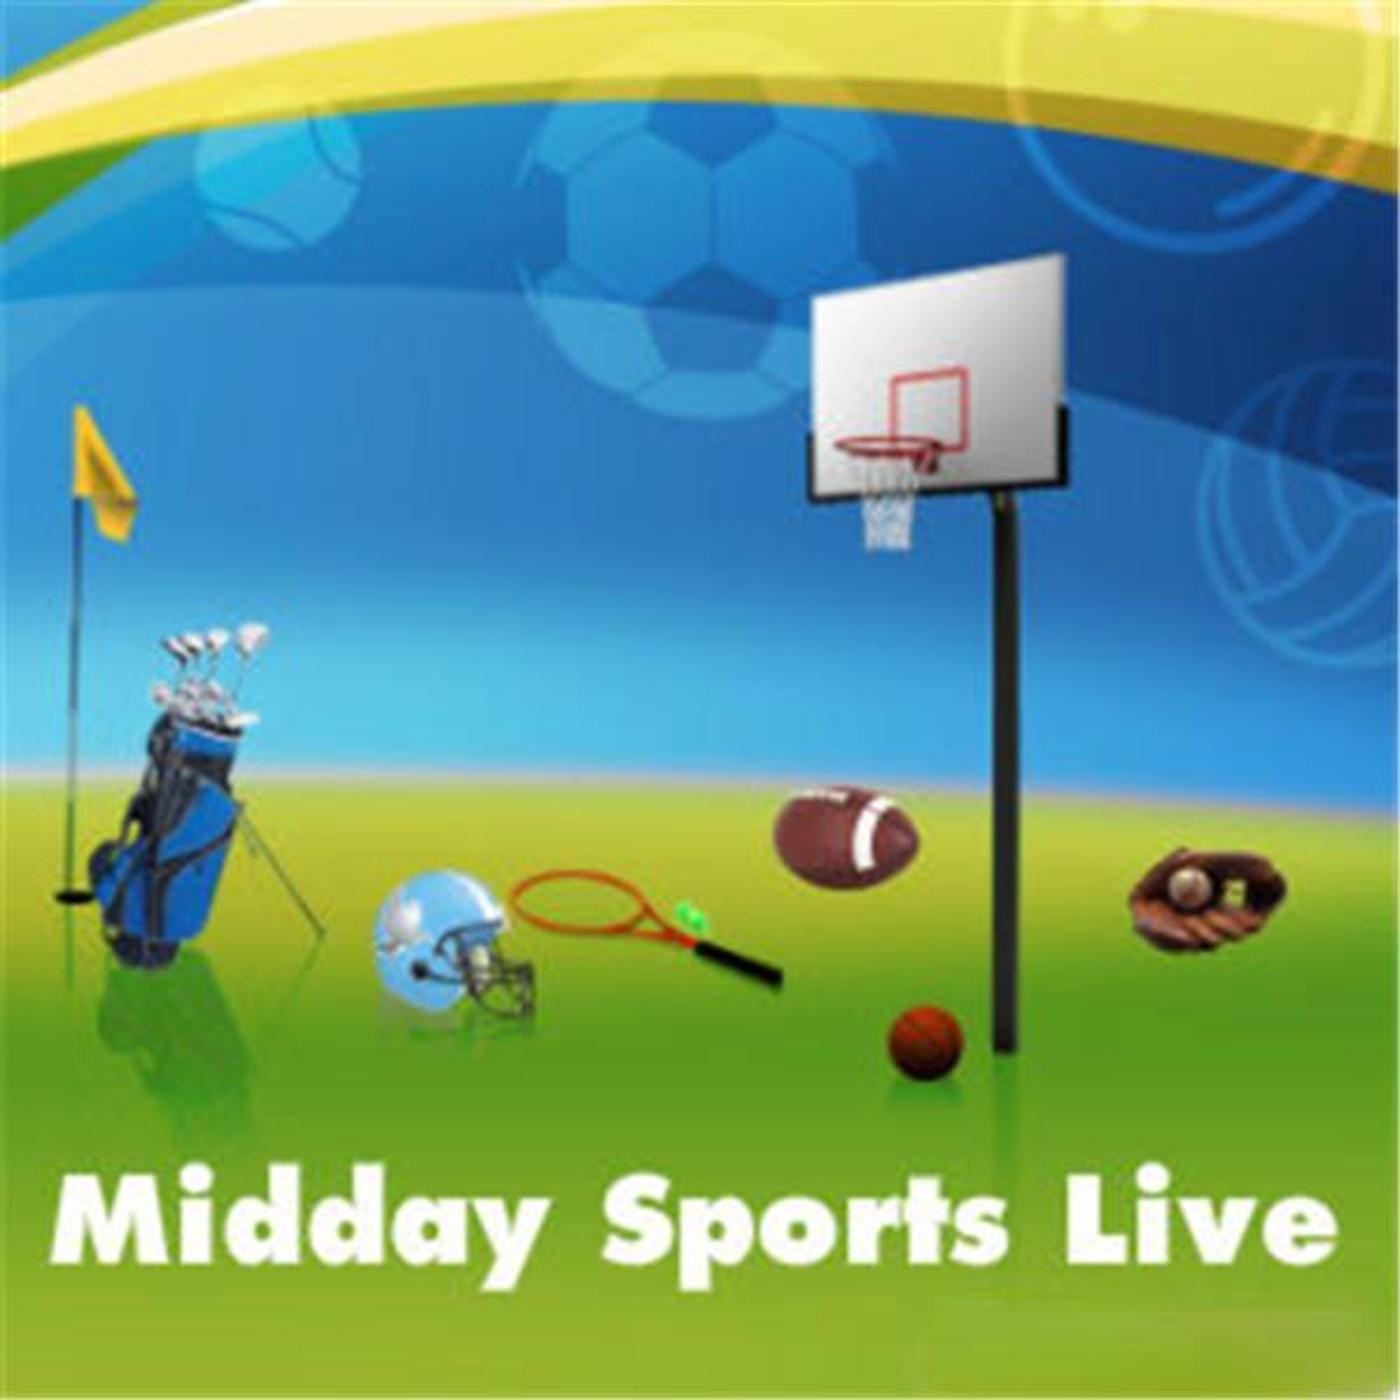 Midday Sports Live